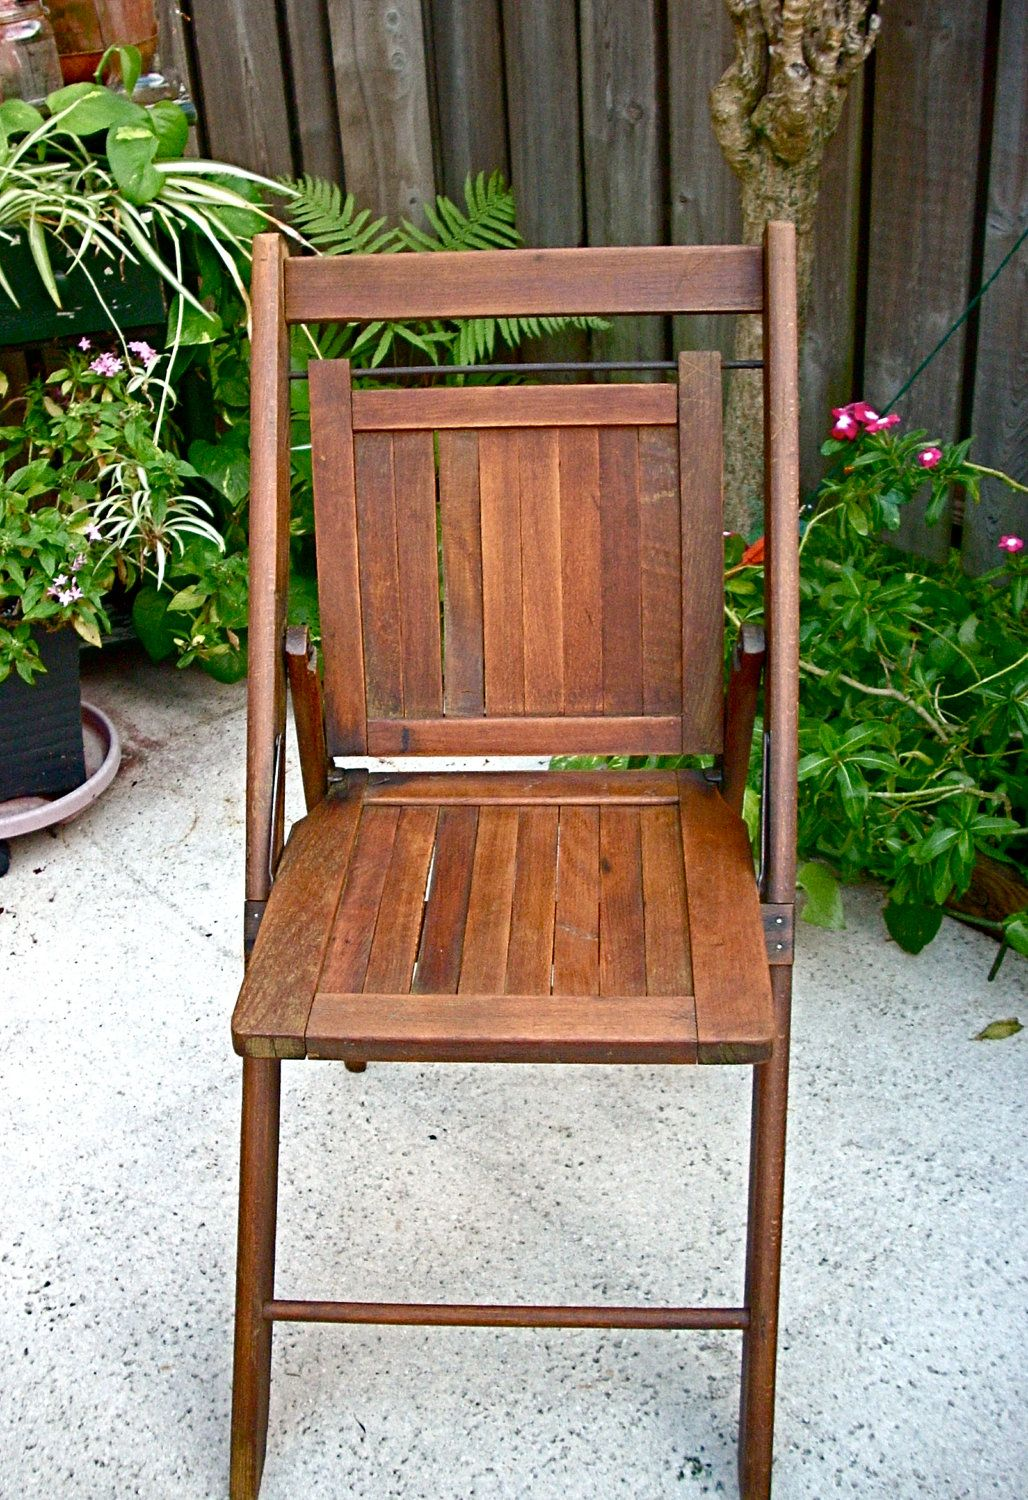 Charmant Vintage Wooden Folding Chair, Via Etsy.